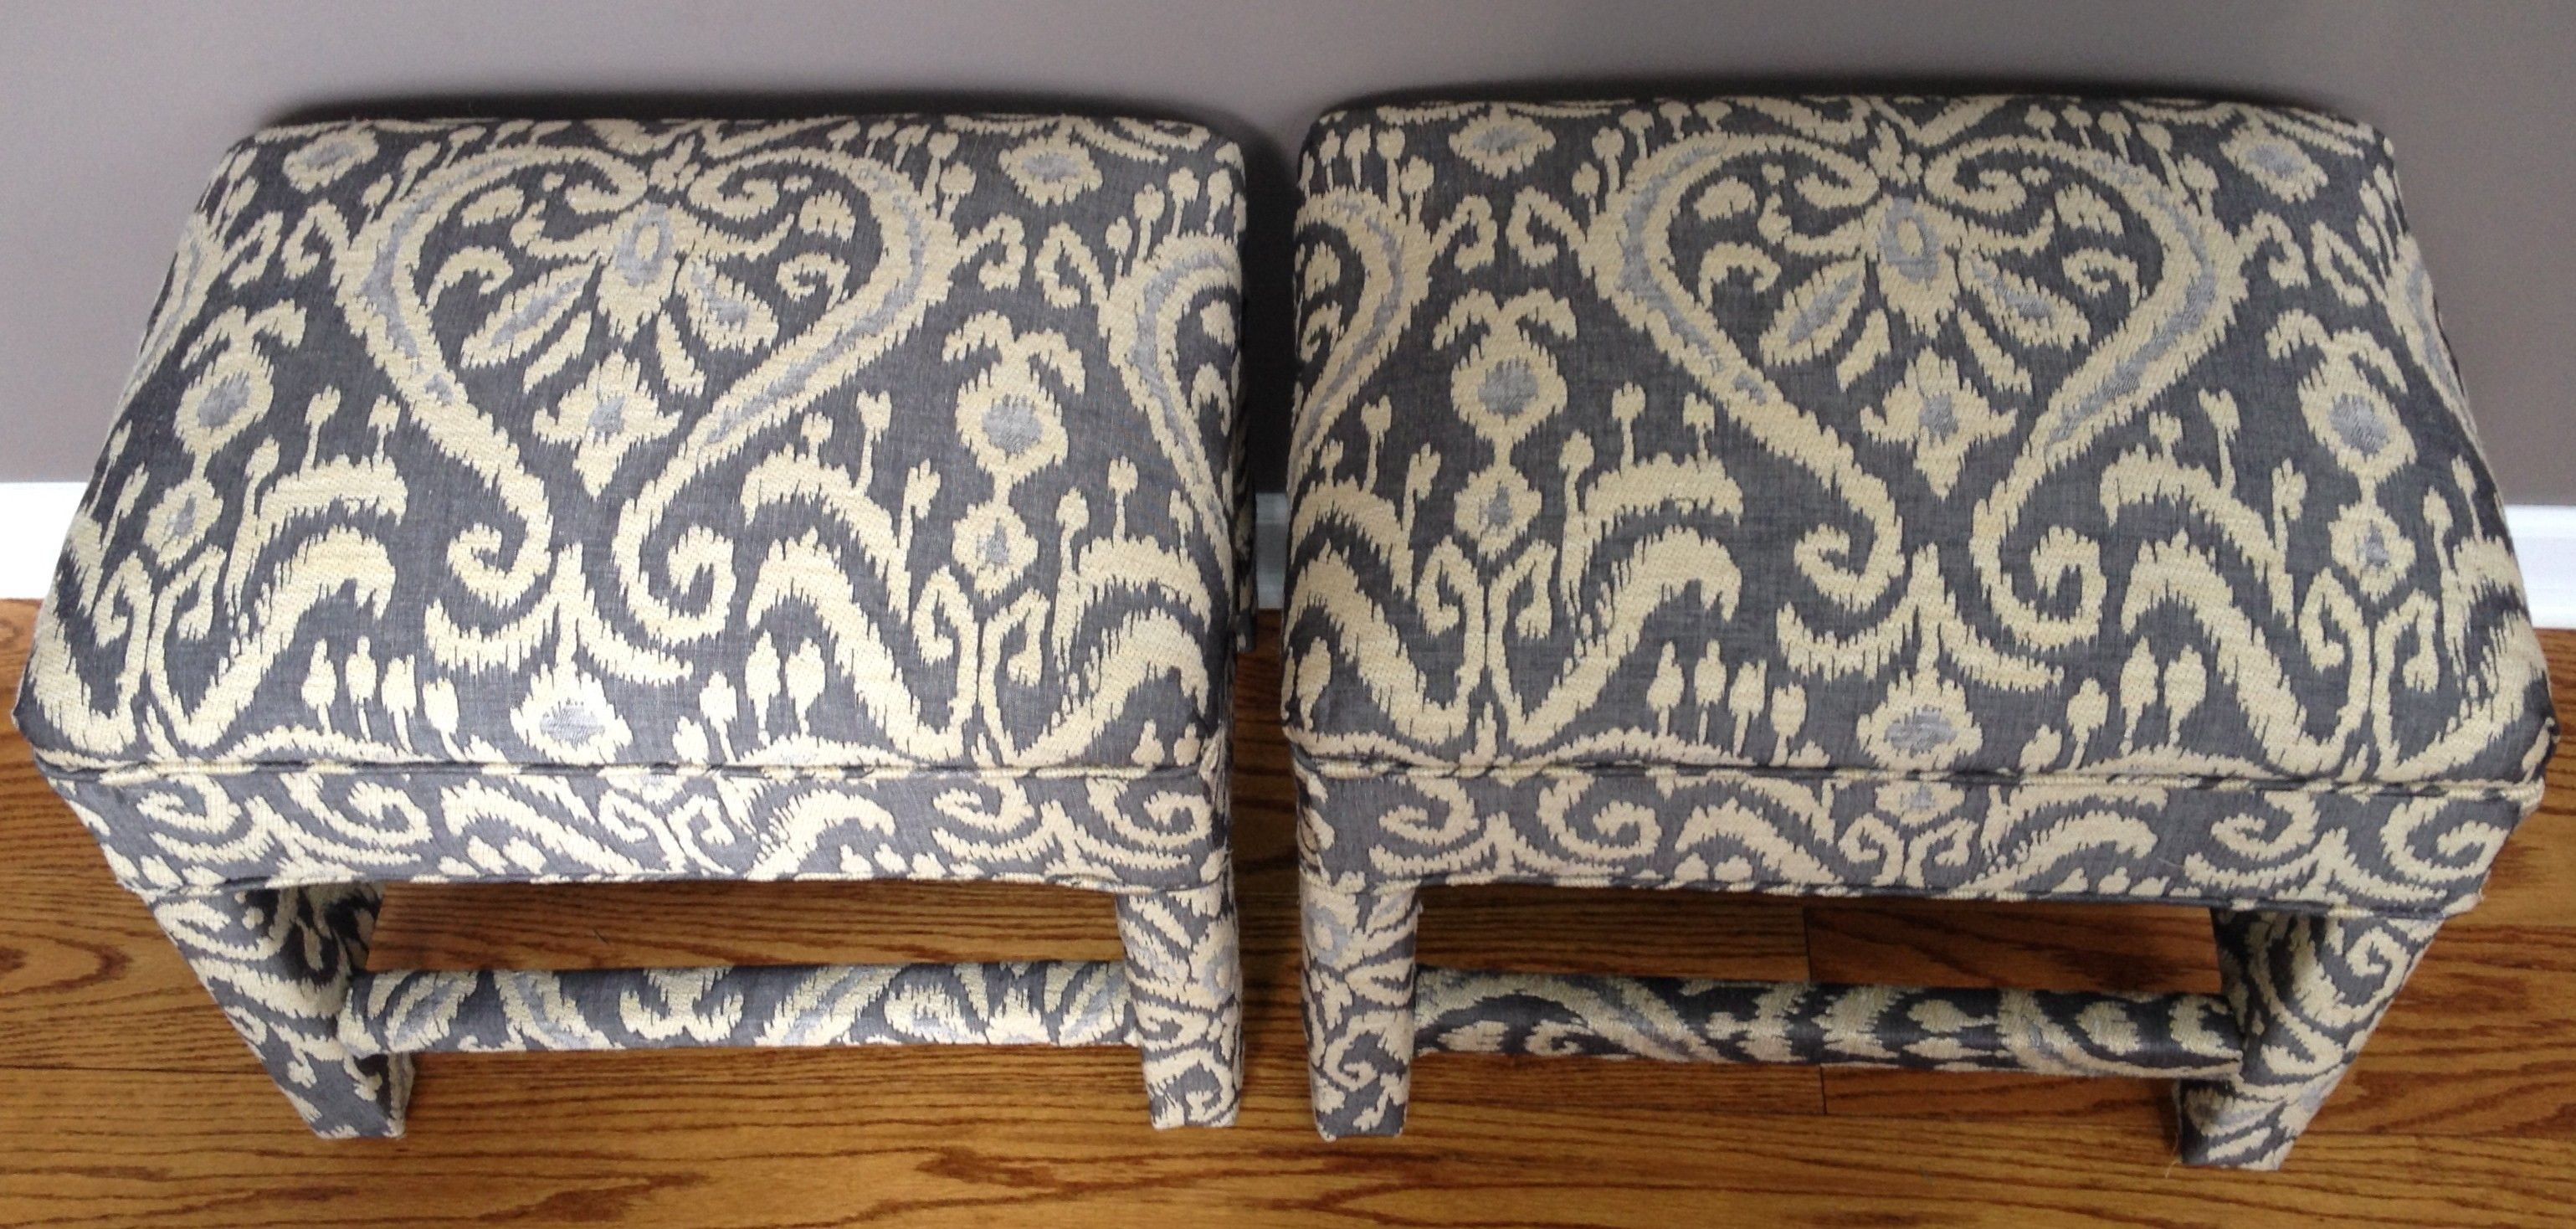 Hmmm. Used. What do you think?  Matching Footstool Pair $399 - Flossmoor http://furnishly.com/matching-footstool-pair.html